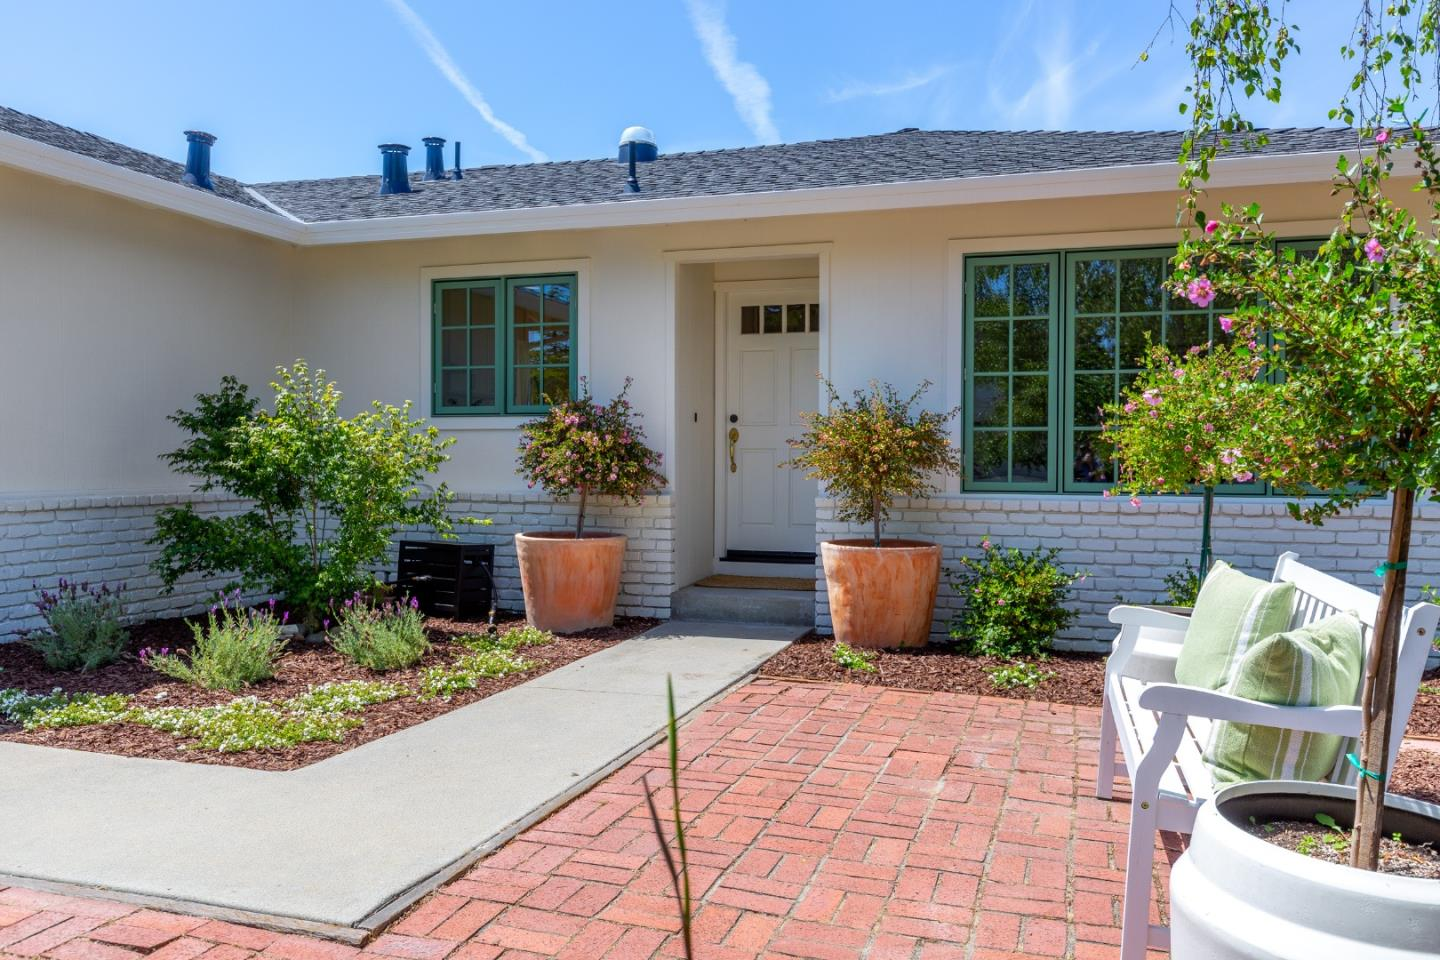 Detail Gallery Image 1 of 40 For 100 Pebble Beach Dr, Aptos, CA, 95003 - 3 Beds | 2 Baths